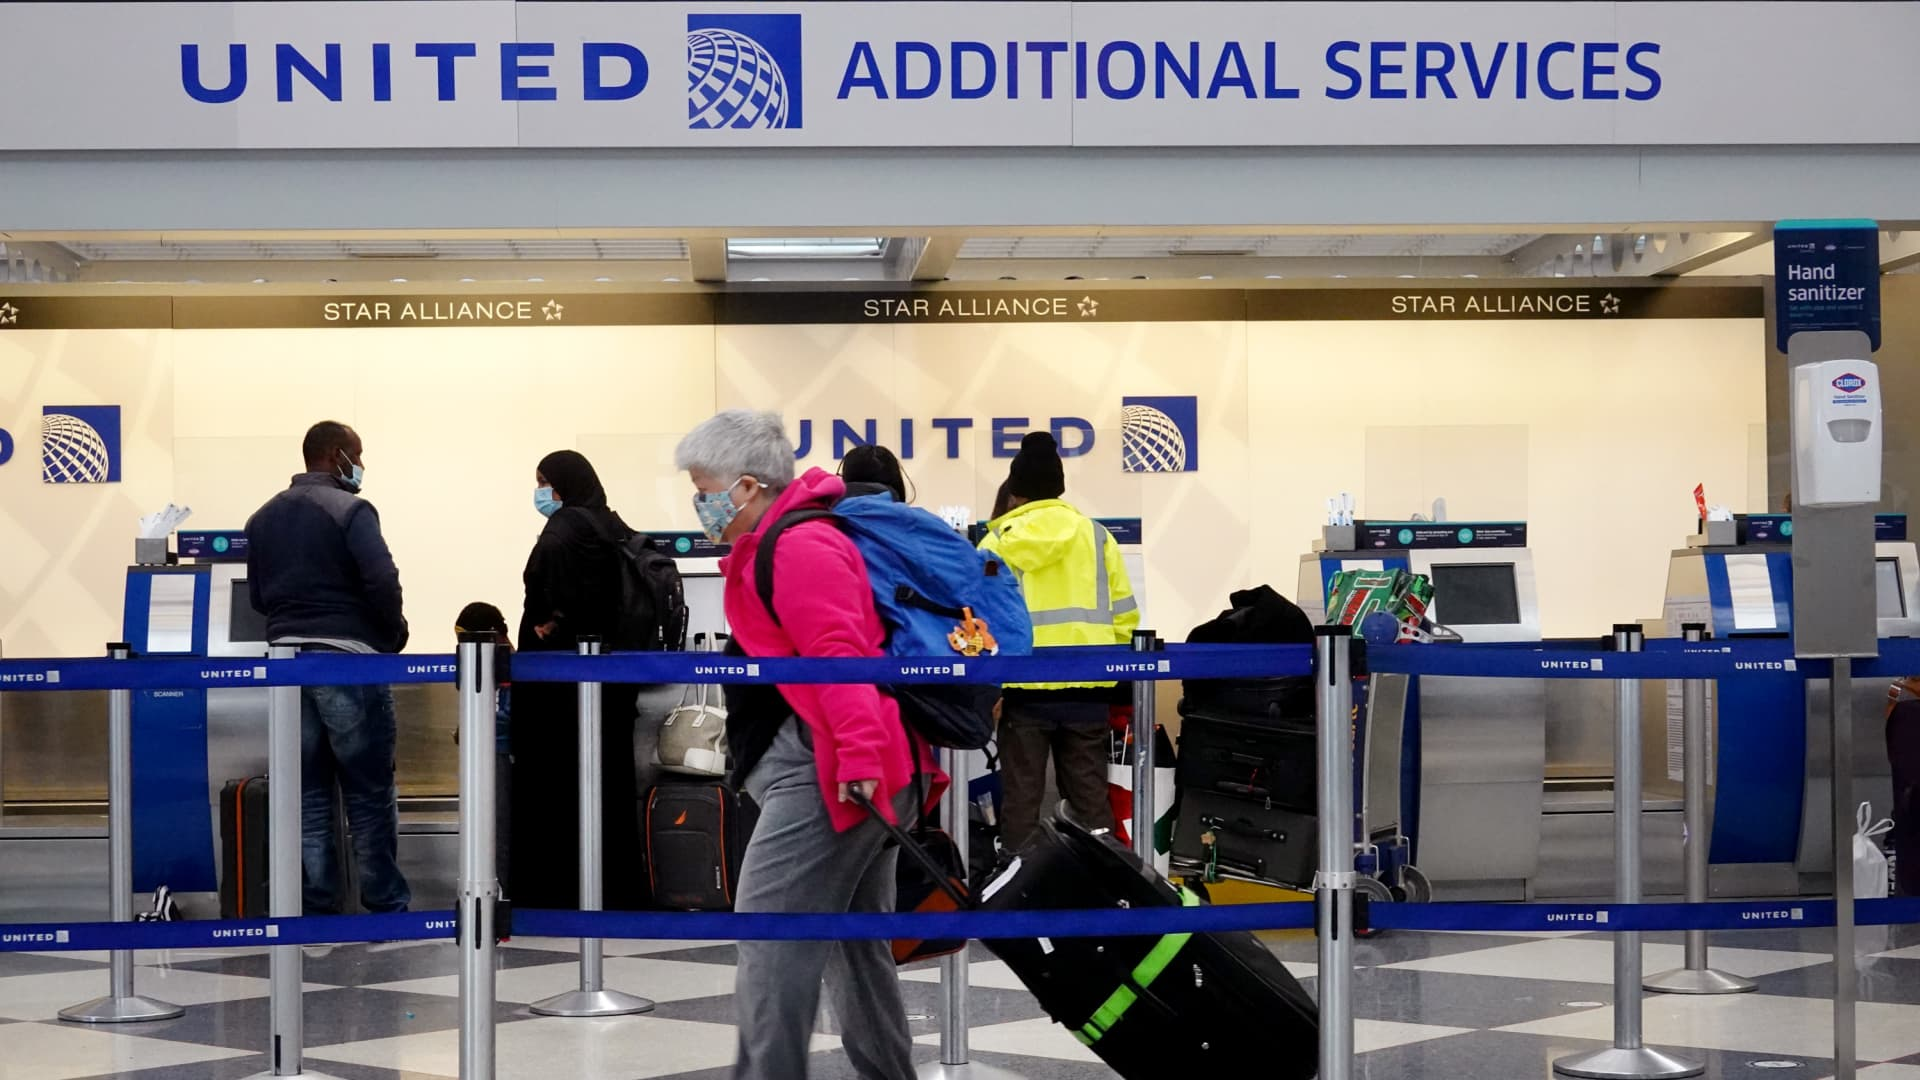 CHICAGO, ILLINOIS - MARCH 16: Travelers arrive for flights at O'Hare international Airport on March 16, 2021 in Chicago, Illinois. On March 12, the TSA screened more than 1.3 million travelers, the highest number since the start of the pandemic.(Photo by Scott Olson/Getty Images)